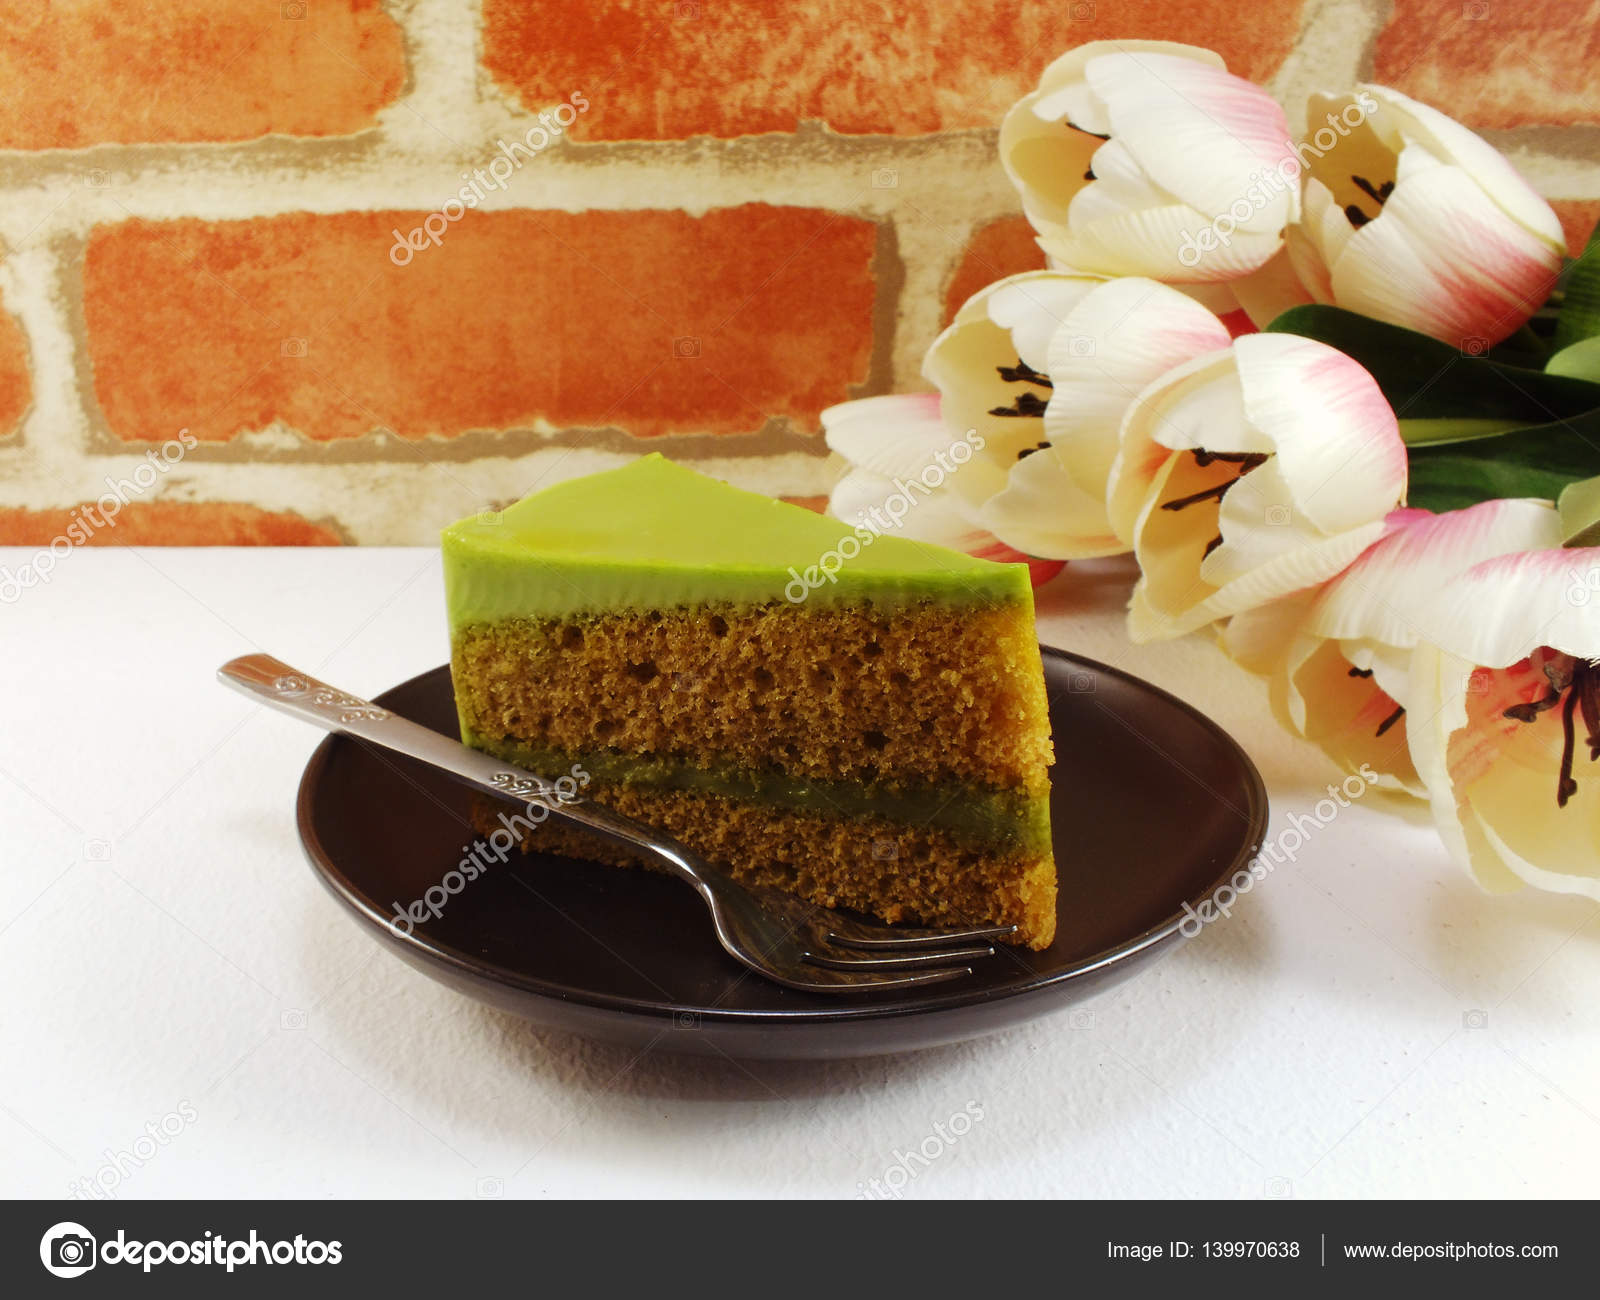 Homemade Green Tea Cake On Dish With Spring Flower And Space Copy